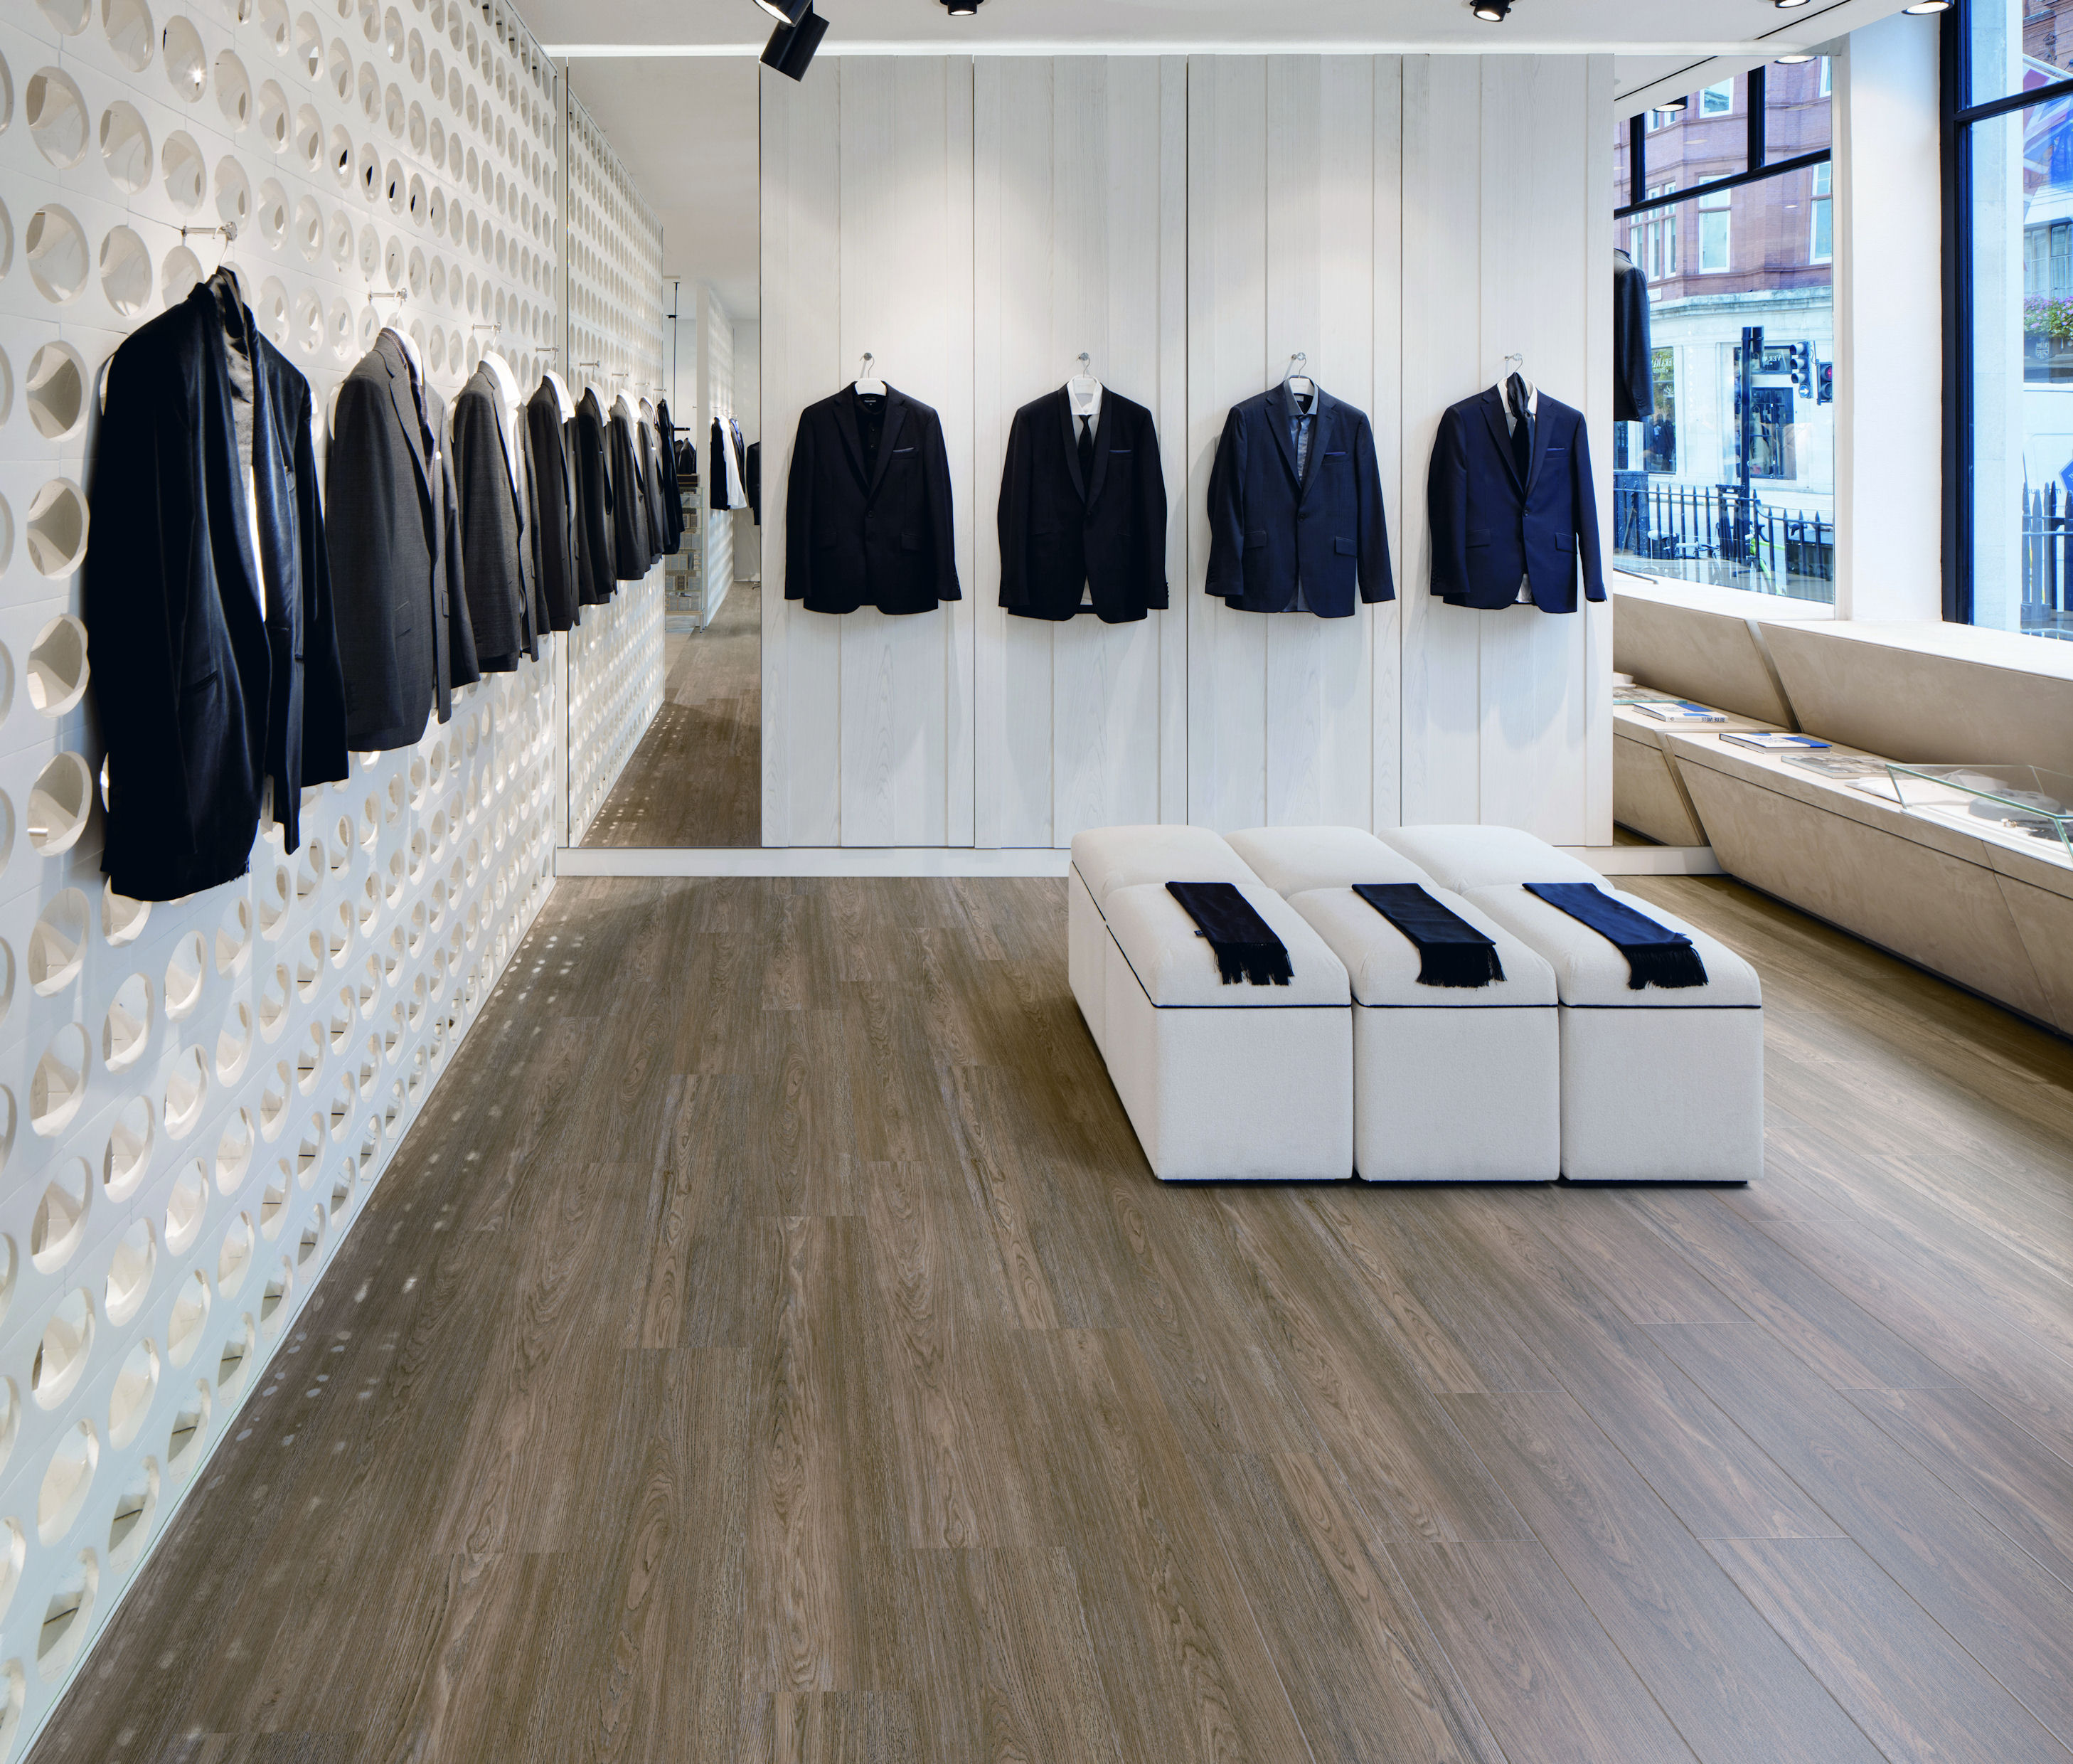 Spencer Hart, London, W1K 5DX, United Kingdom. Architect: Shed-design, 2011. Store display.